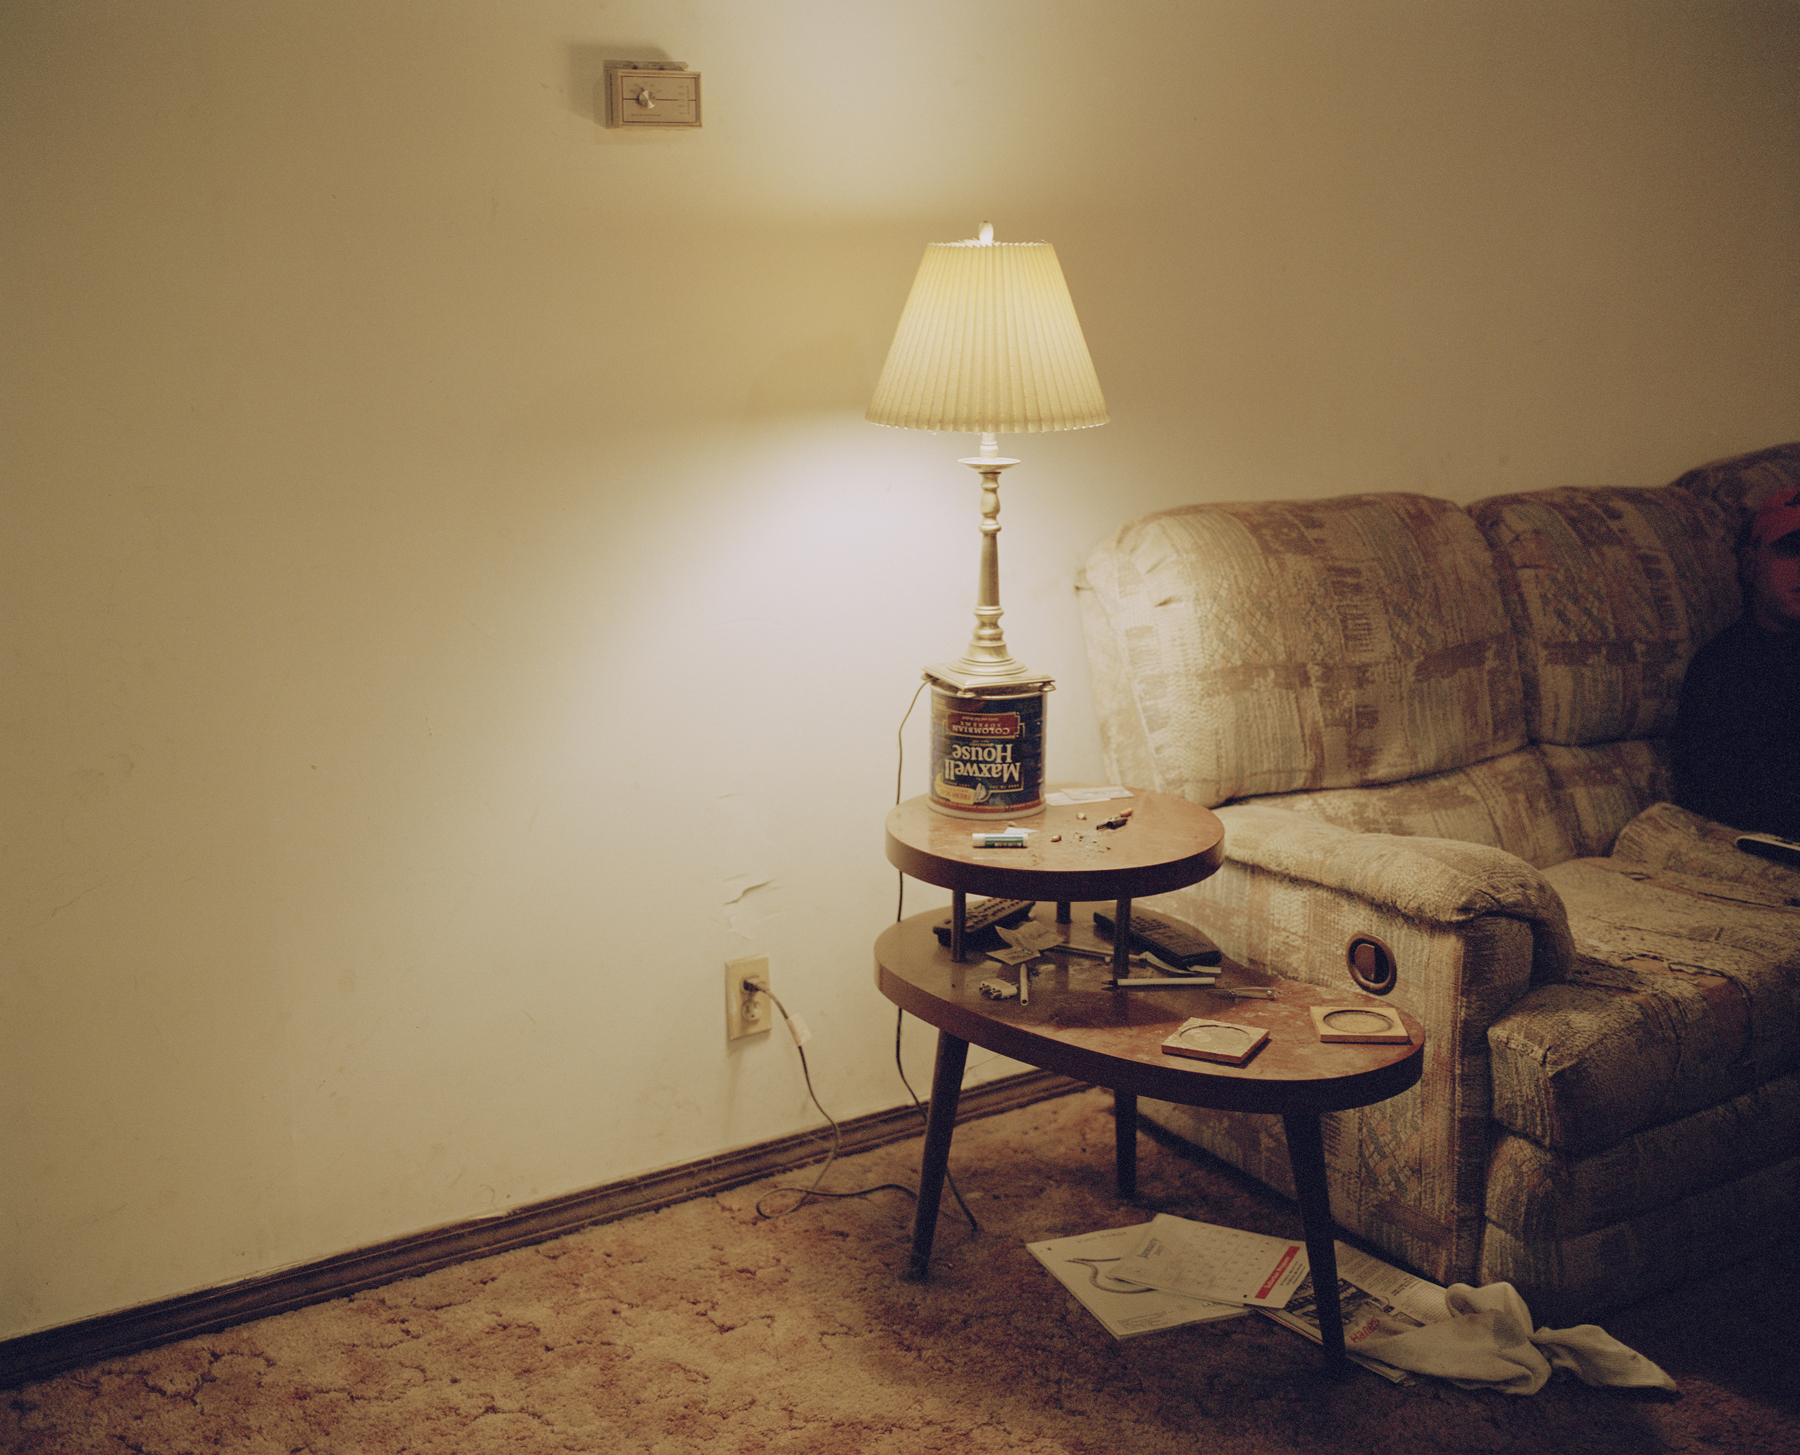 Drug Dealer's Lamp, Oswego County, NY.   , 2007    Ink jet print, edition of 5 + 2AP    9.5 x 11.75 inches